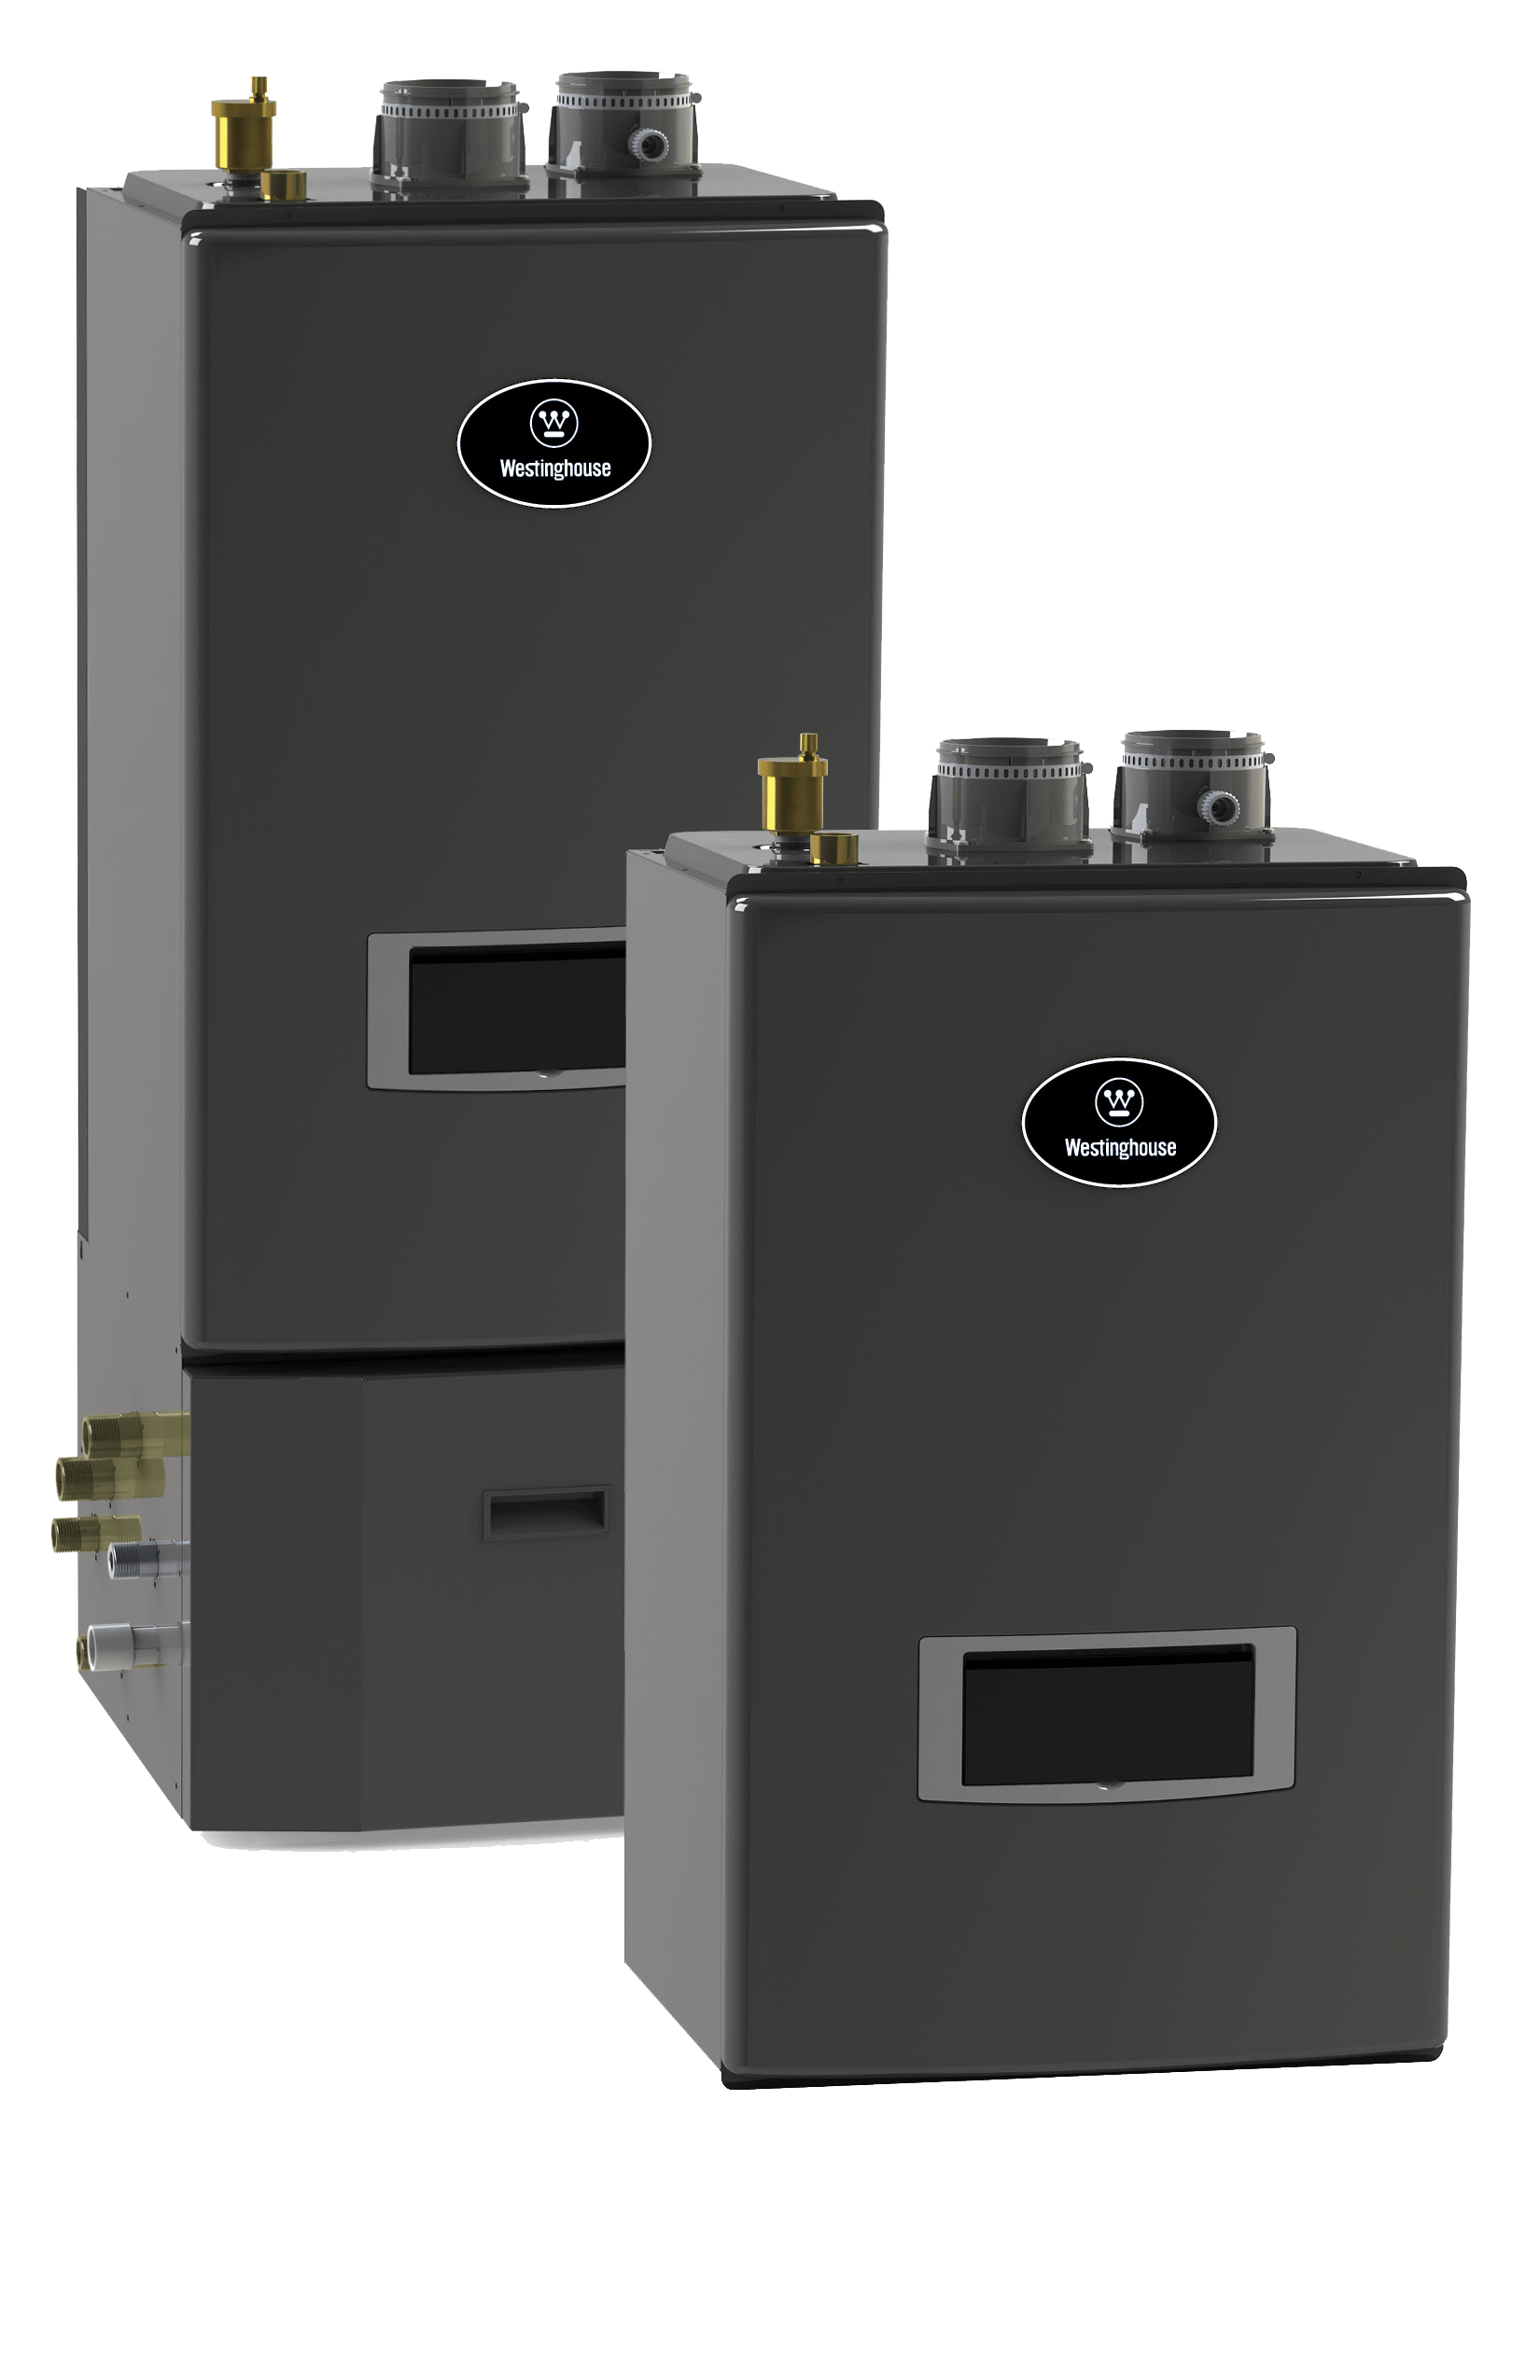 Westinghouse High Efficiency Boiler With Optional Water